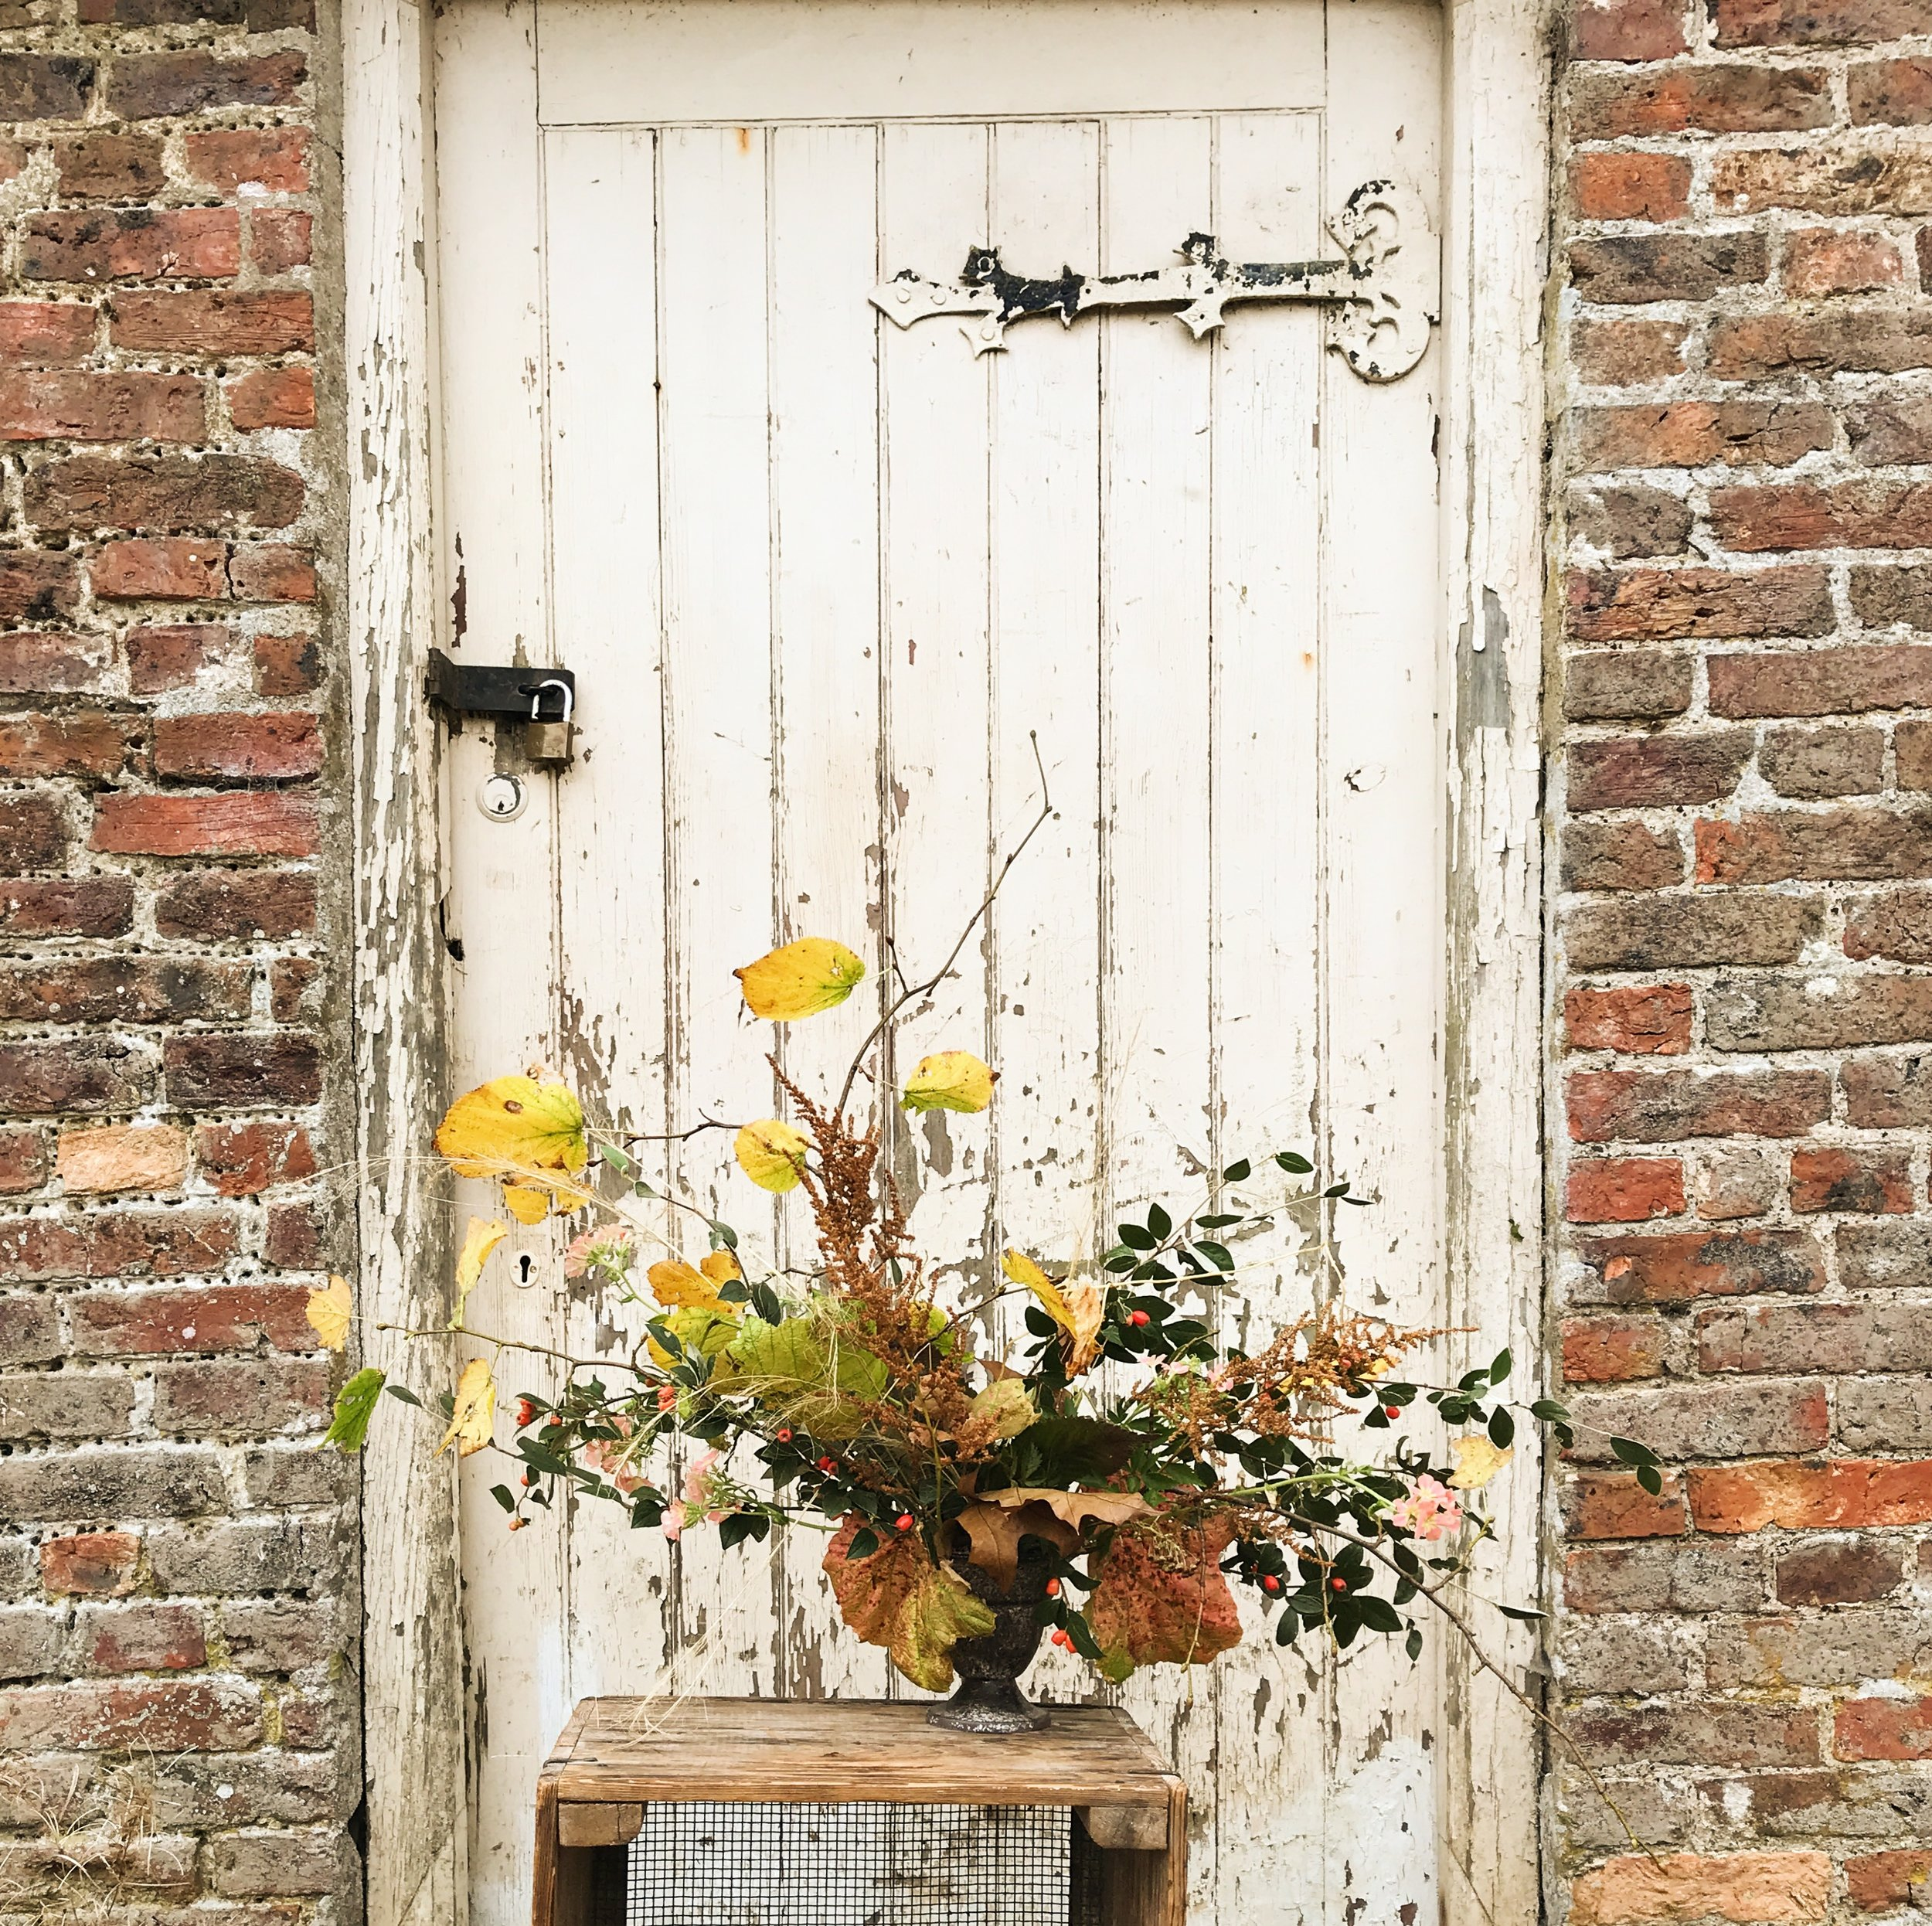 Head gardener's urn - Fiona worked with the gardening team at Castle Howard demonstrating urns made in Fiona's style